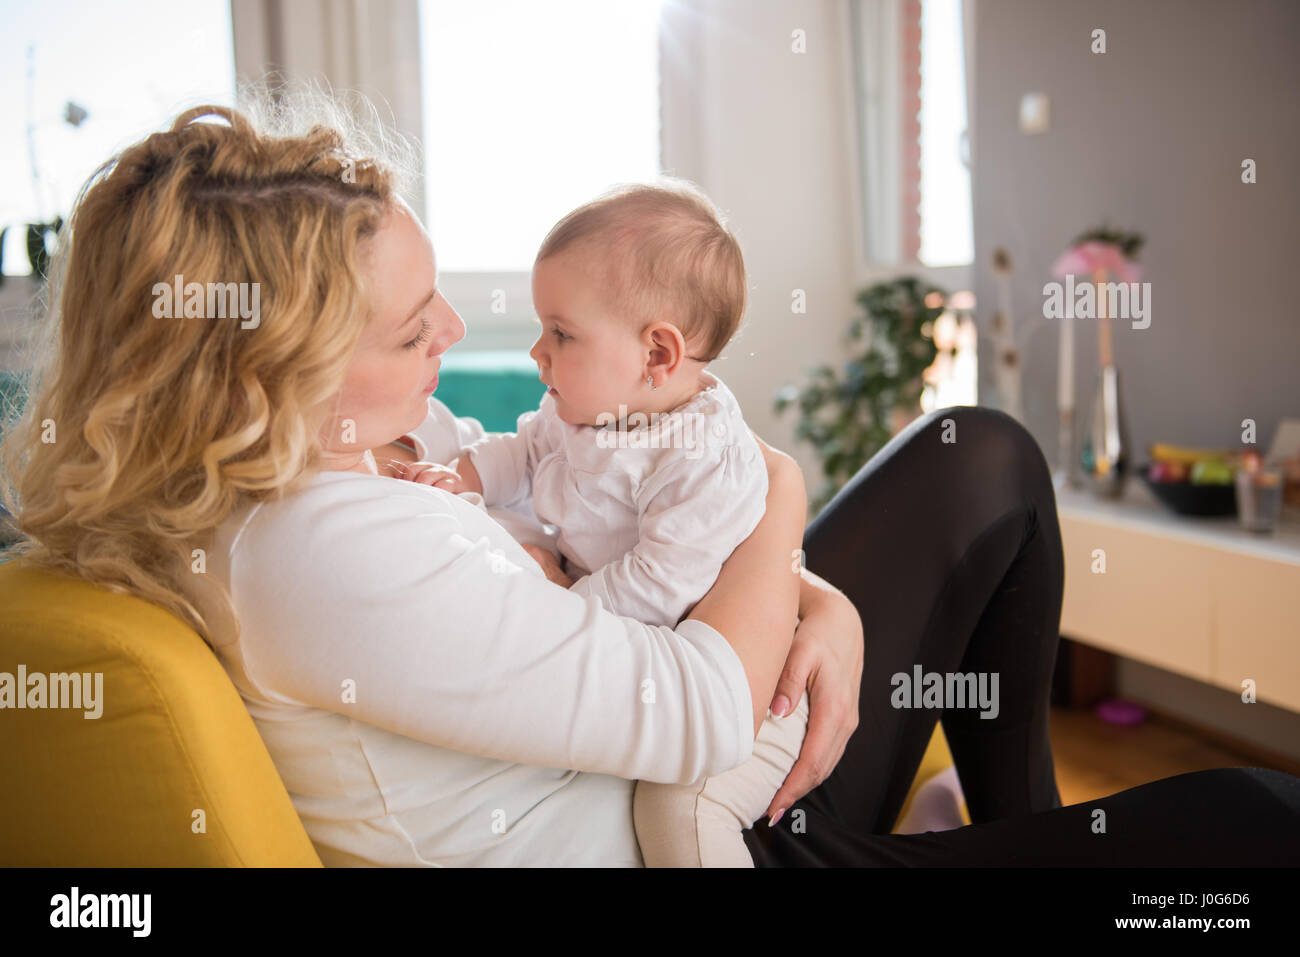 Mother holding baby in her arms and sitting at yellow armchair - Stock Image